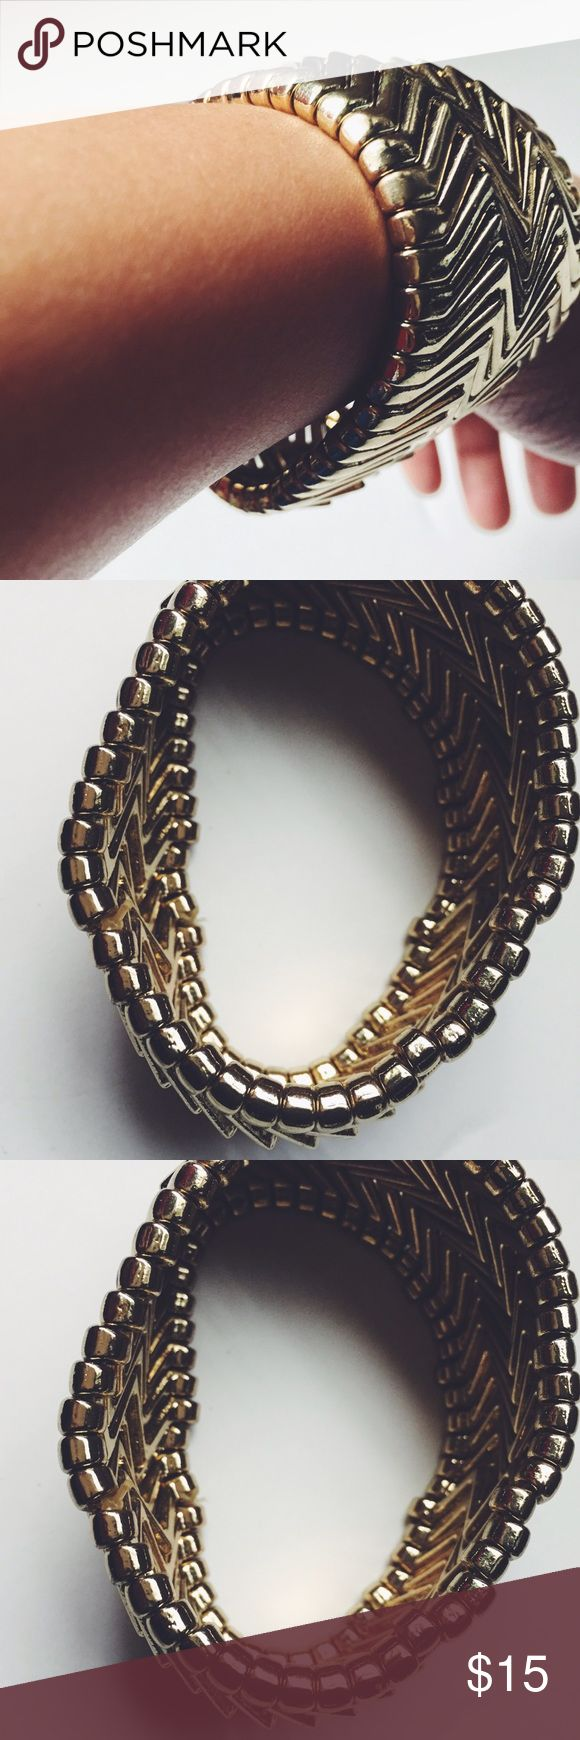 Chevron bracelet. Gold-like color with chevron detail. Stretchy and perfect for layering. Not made out of real gold. Jewelry Bracelets